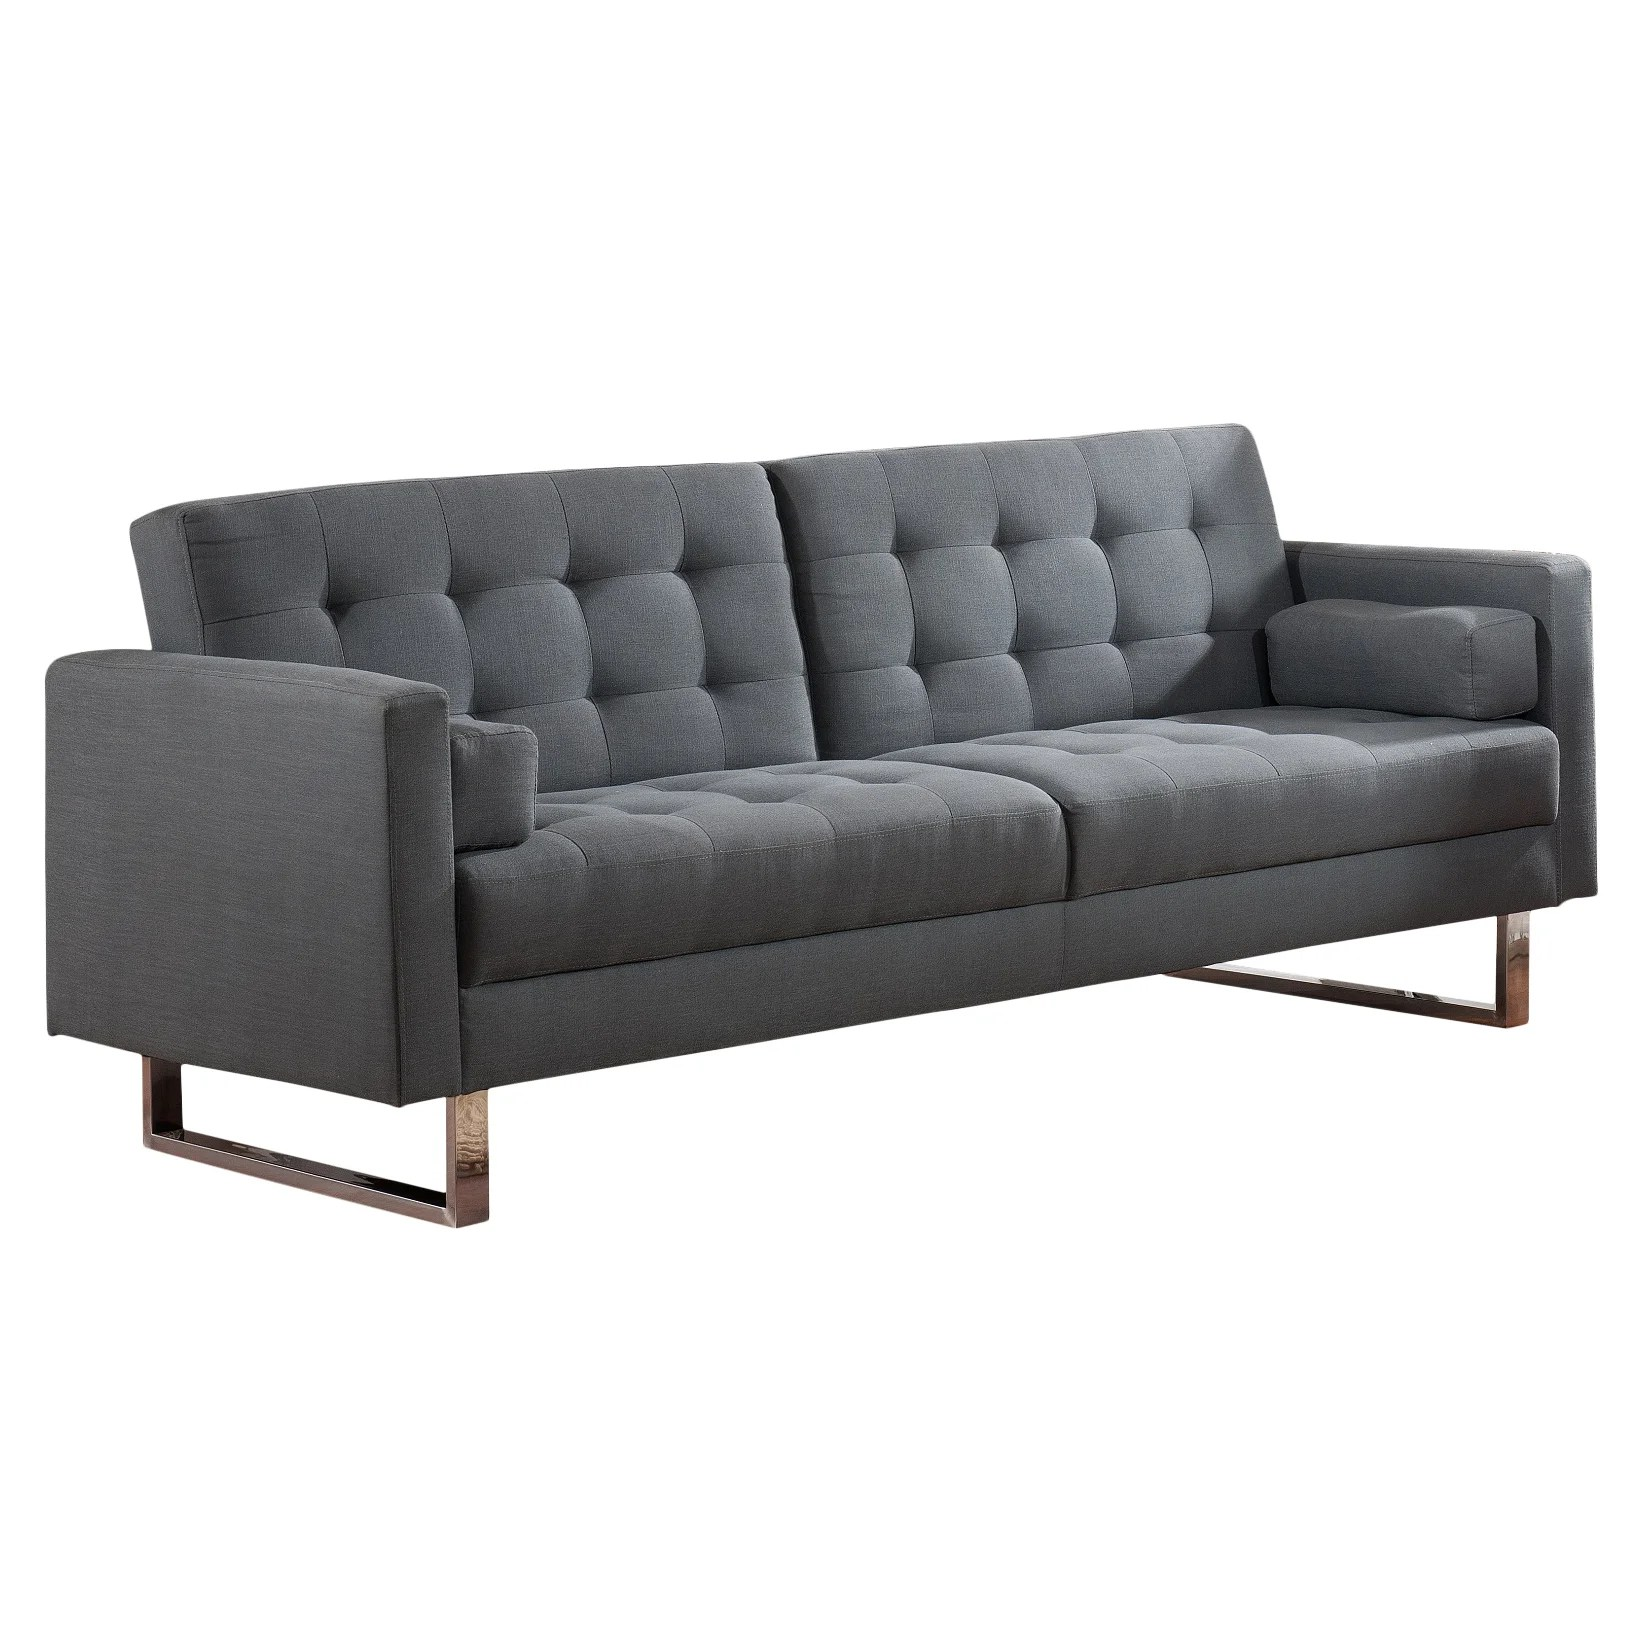 furniture row sofa sleepers repair springs in mercury lysander sleeper and reviews wayfair